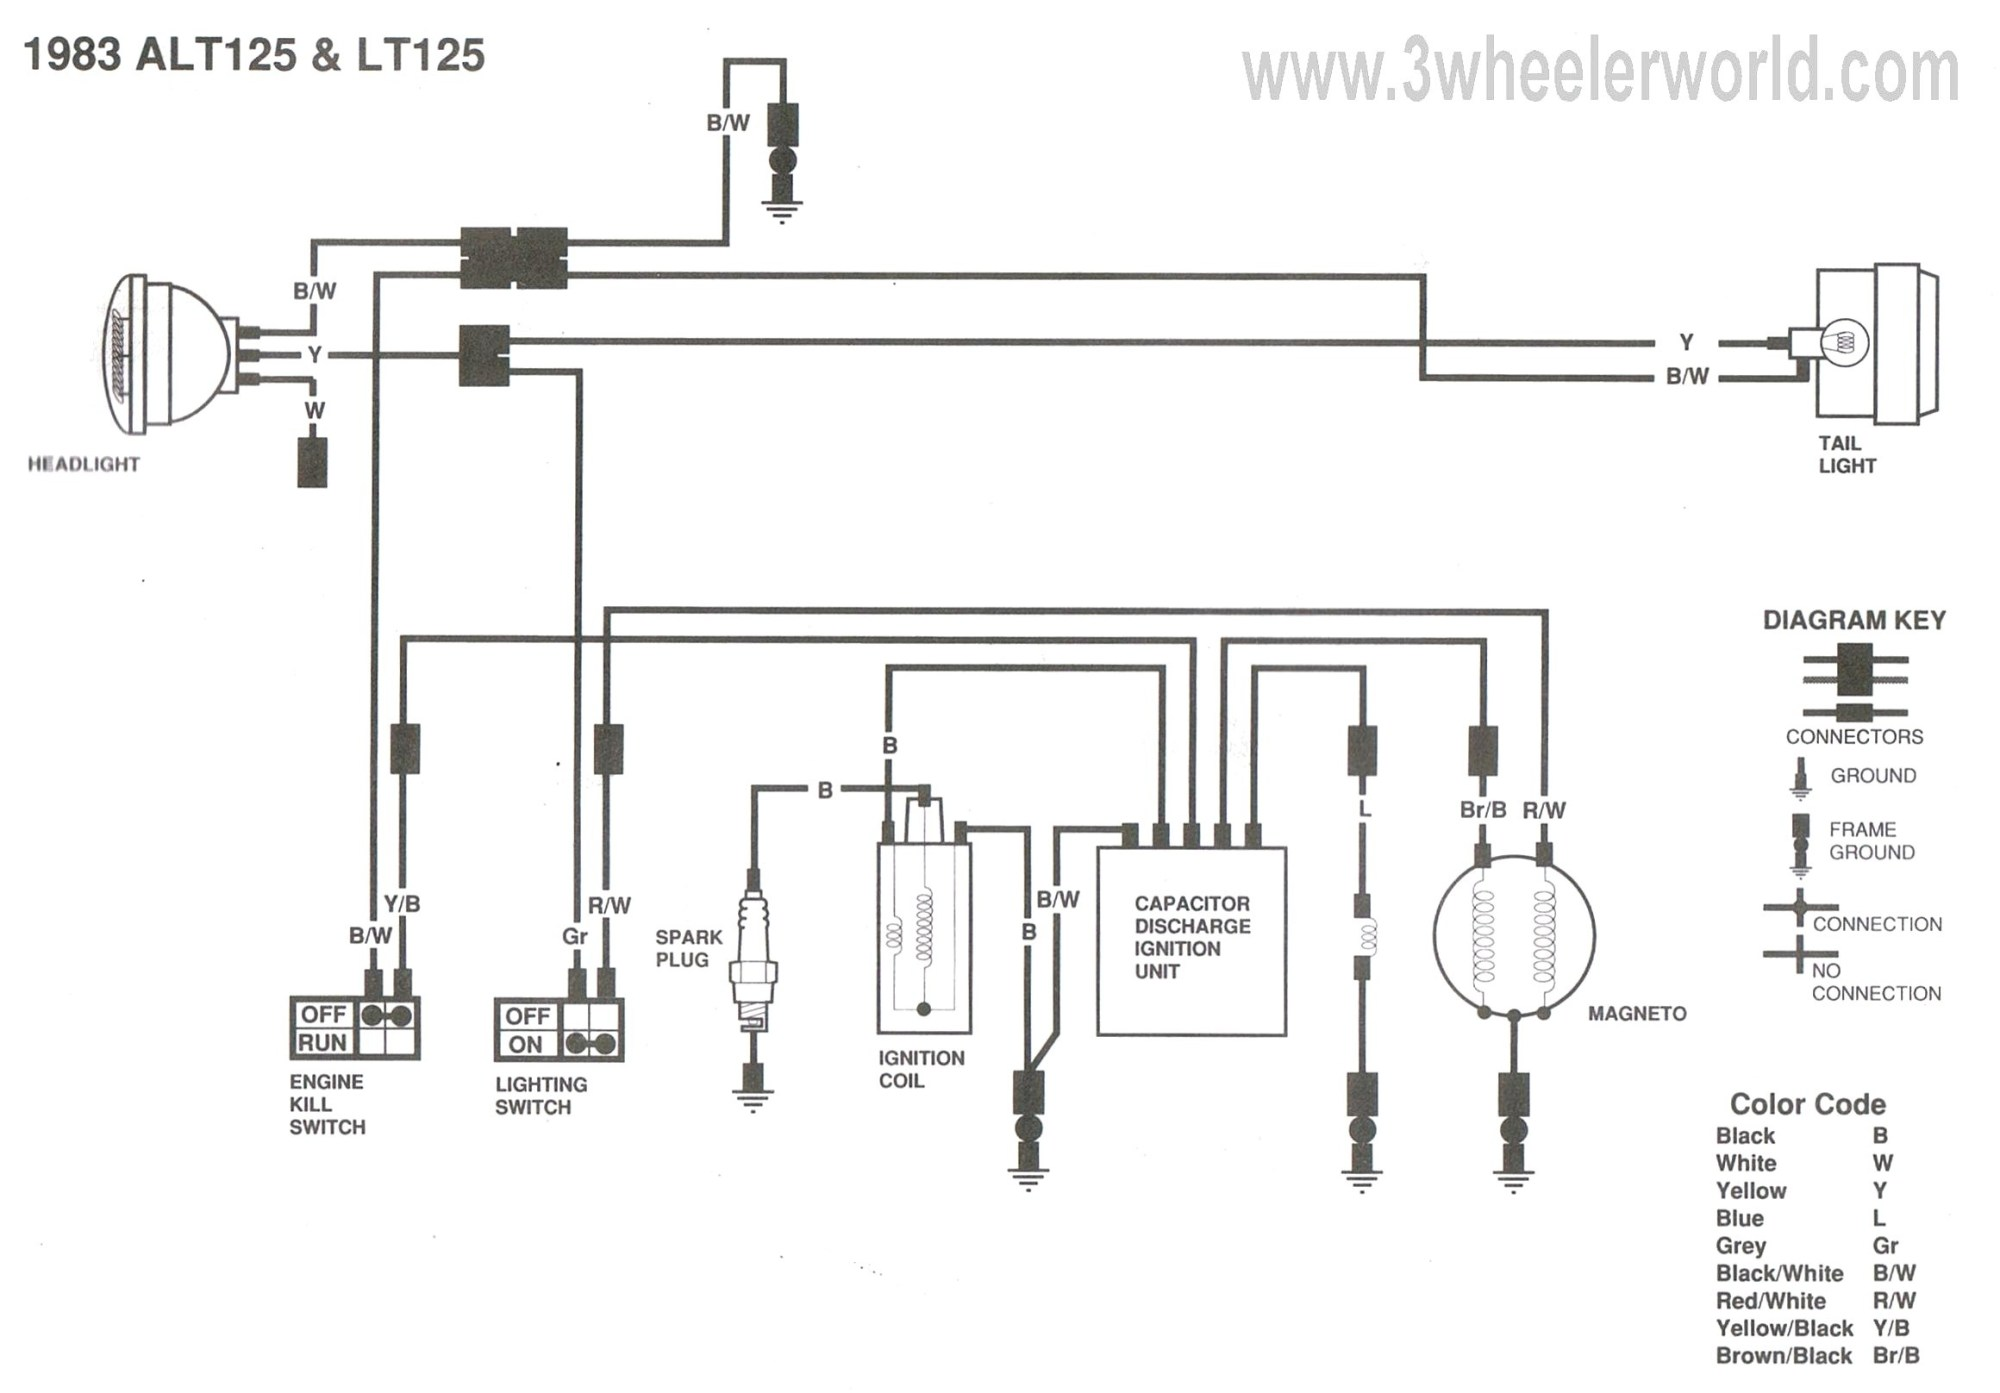 hight resolution of kawasaki mule ignition wiring diagram kawasaki bayou 220 ignition wiring diagram new wiring diagram for